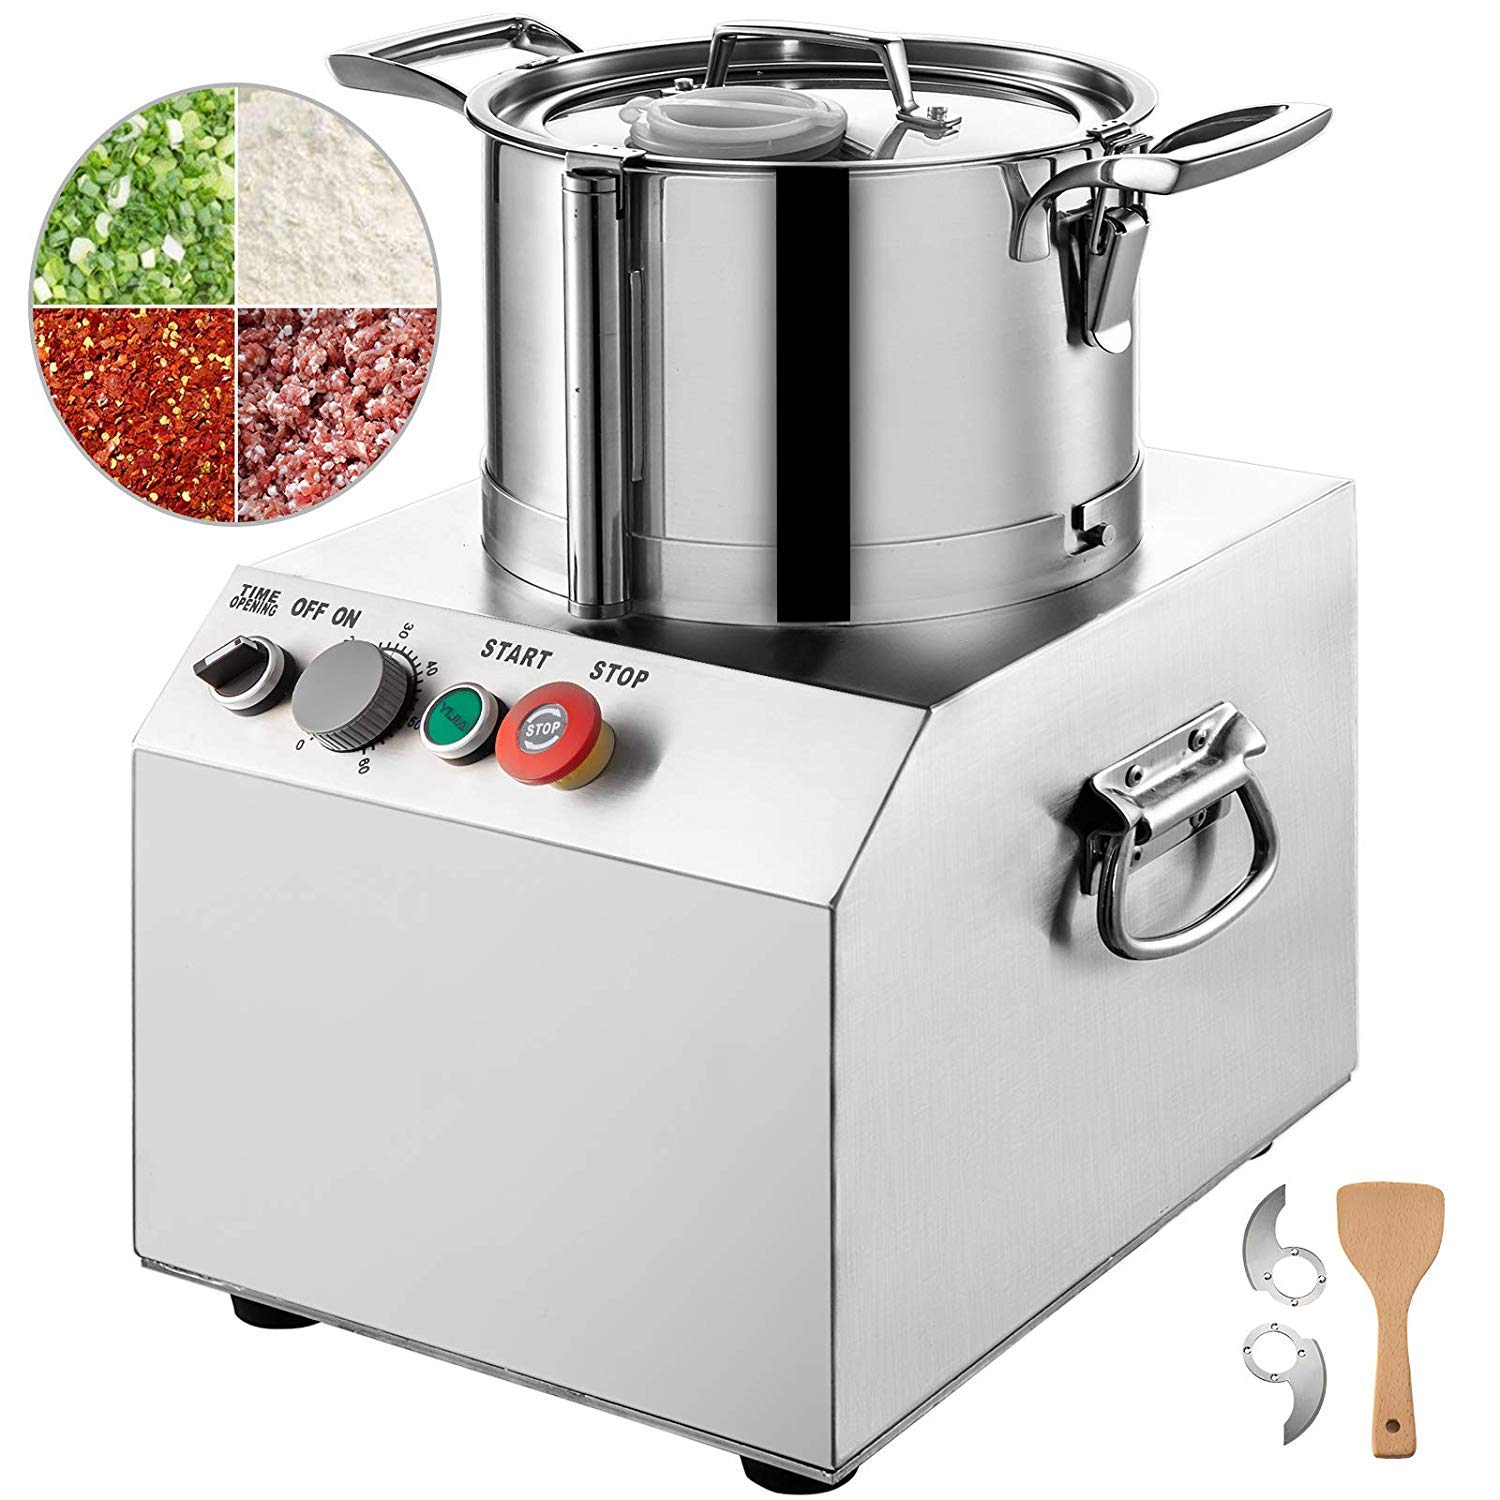 TTXXLL 220V Commercial Grade Food Processor Blender 15L Electric Food Processor Kitchen Fritter 1400RPM Stainless Steel Processor Perfect for Vegetables Fruits Grains